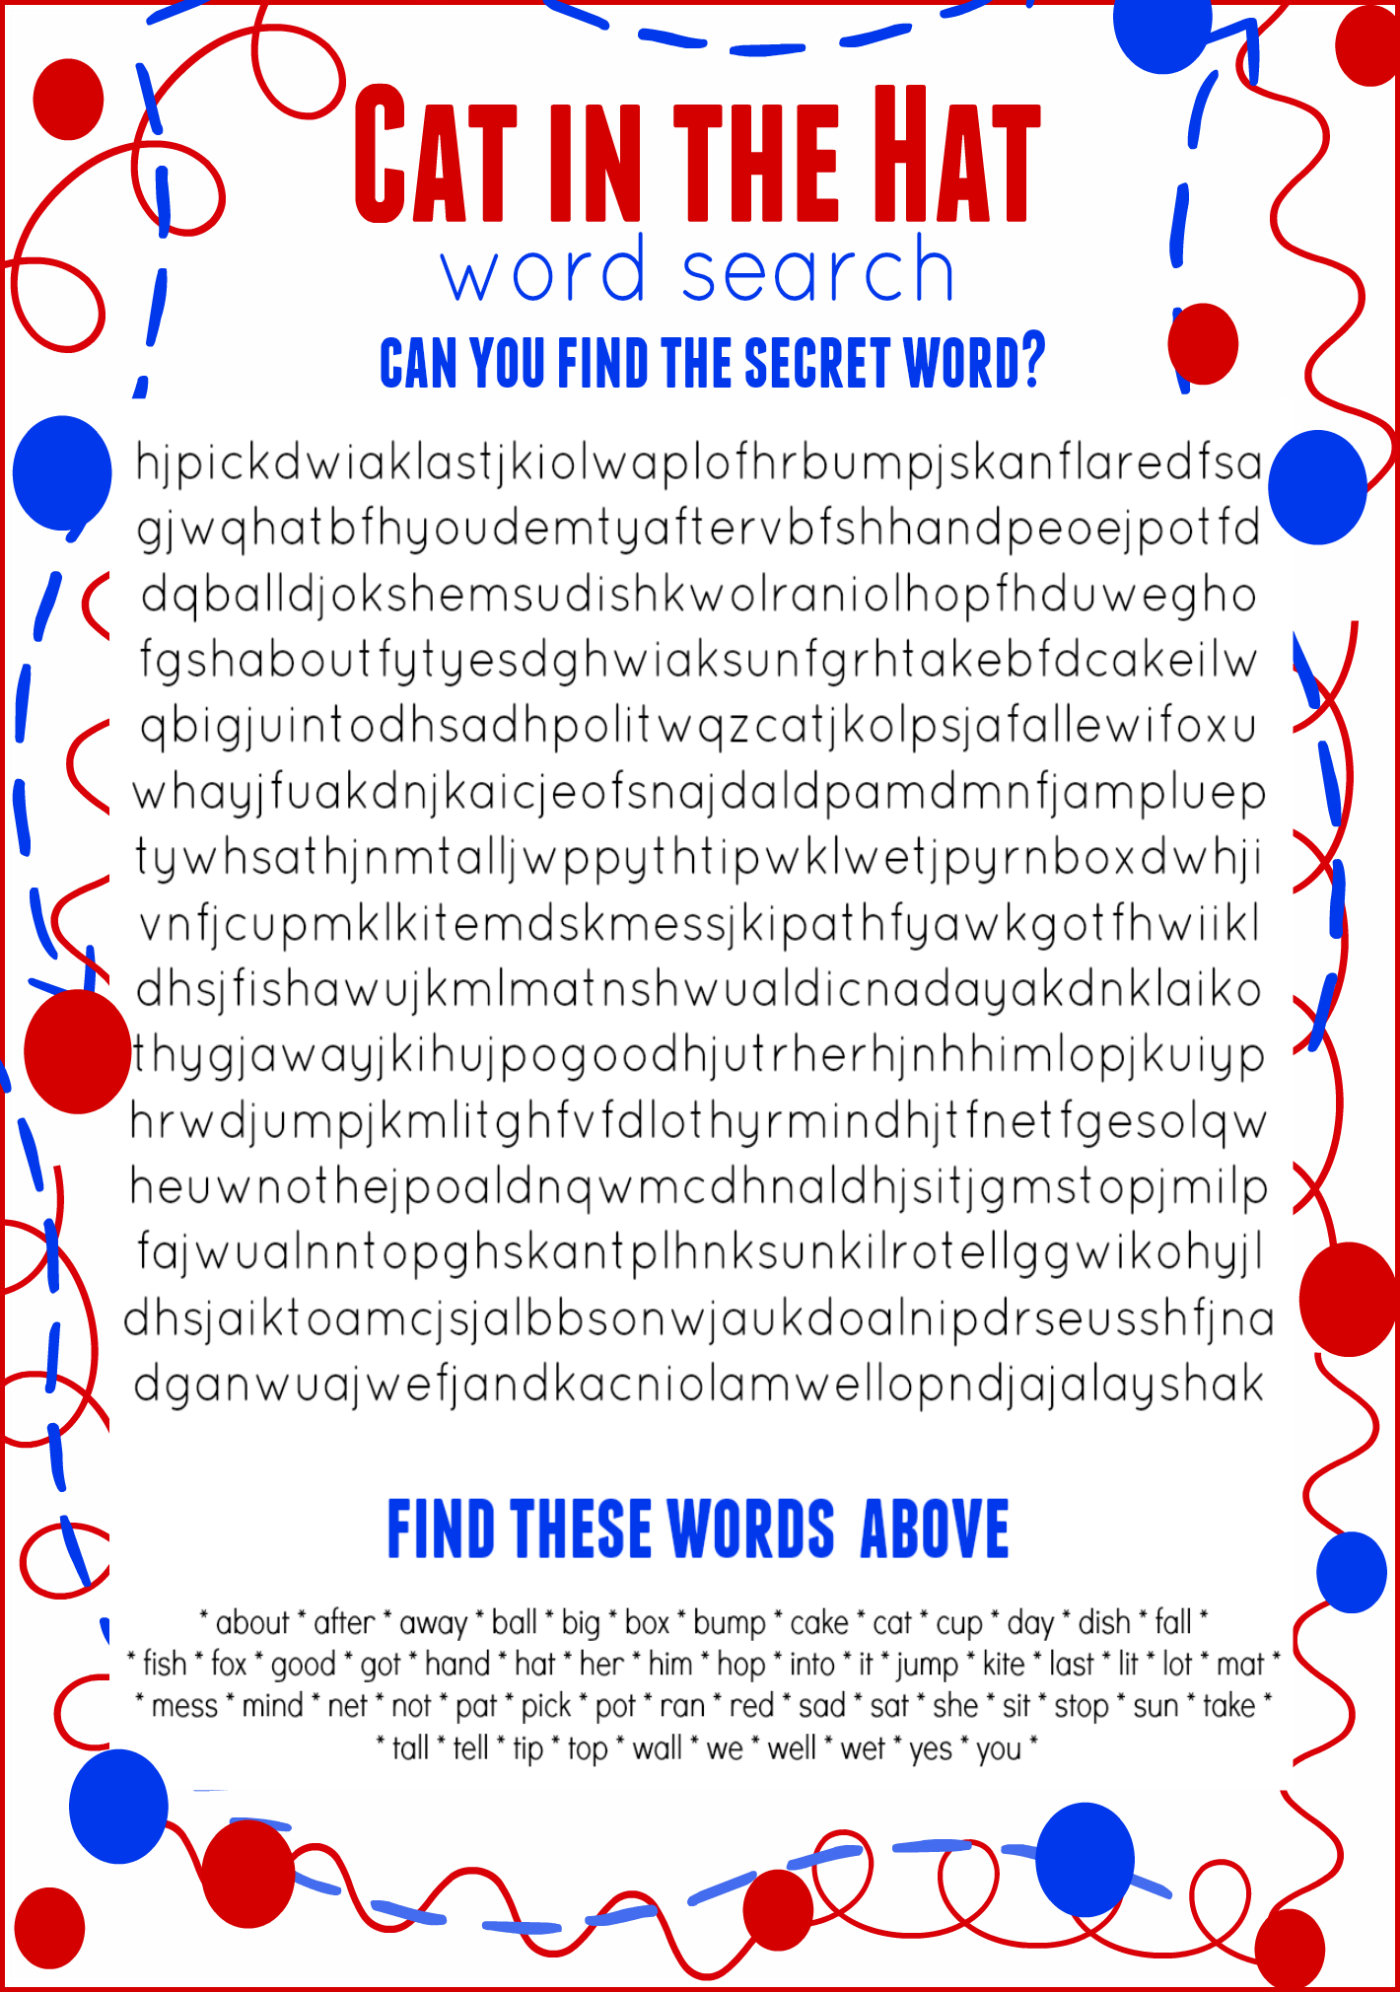 Cat In The Hat Word Search Free Printable Dr. Seuss Birthday | Cat In The Hat Free Printable Worksheets